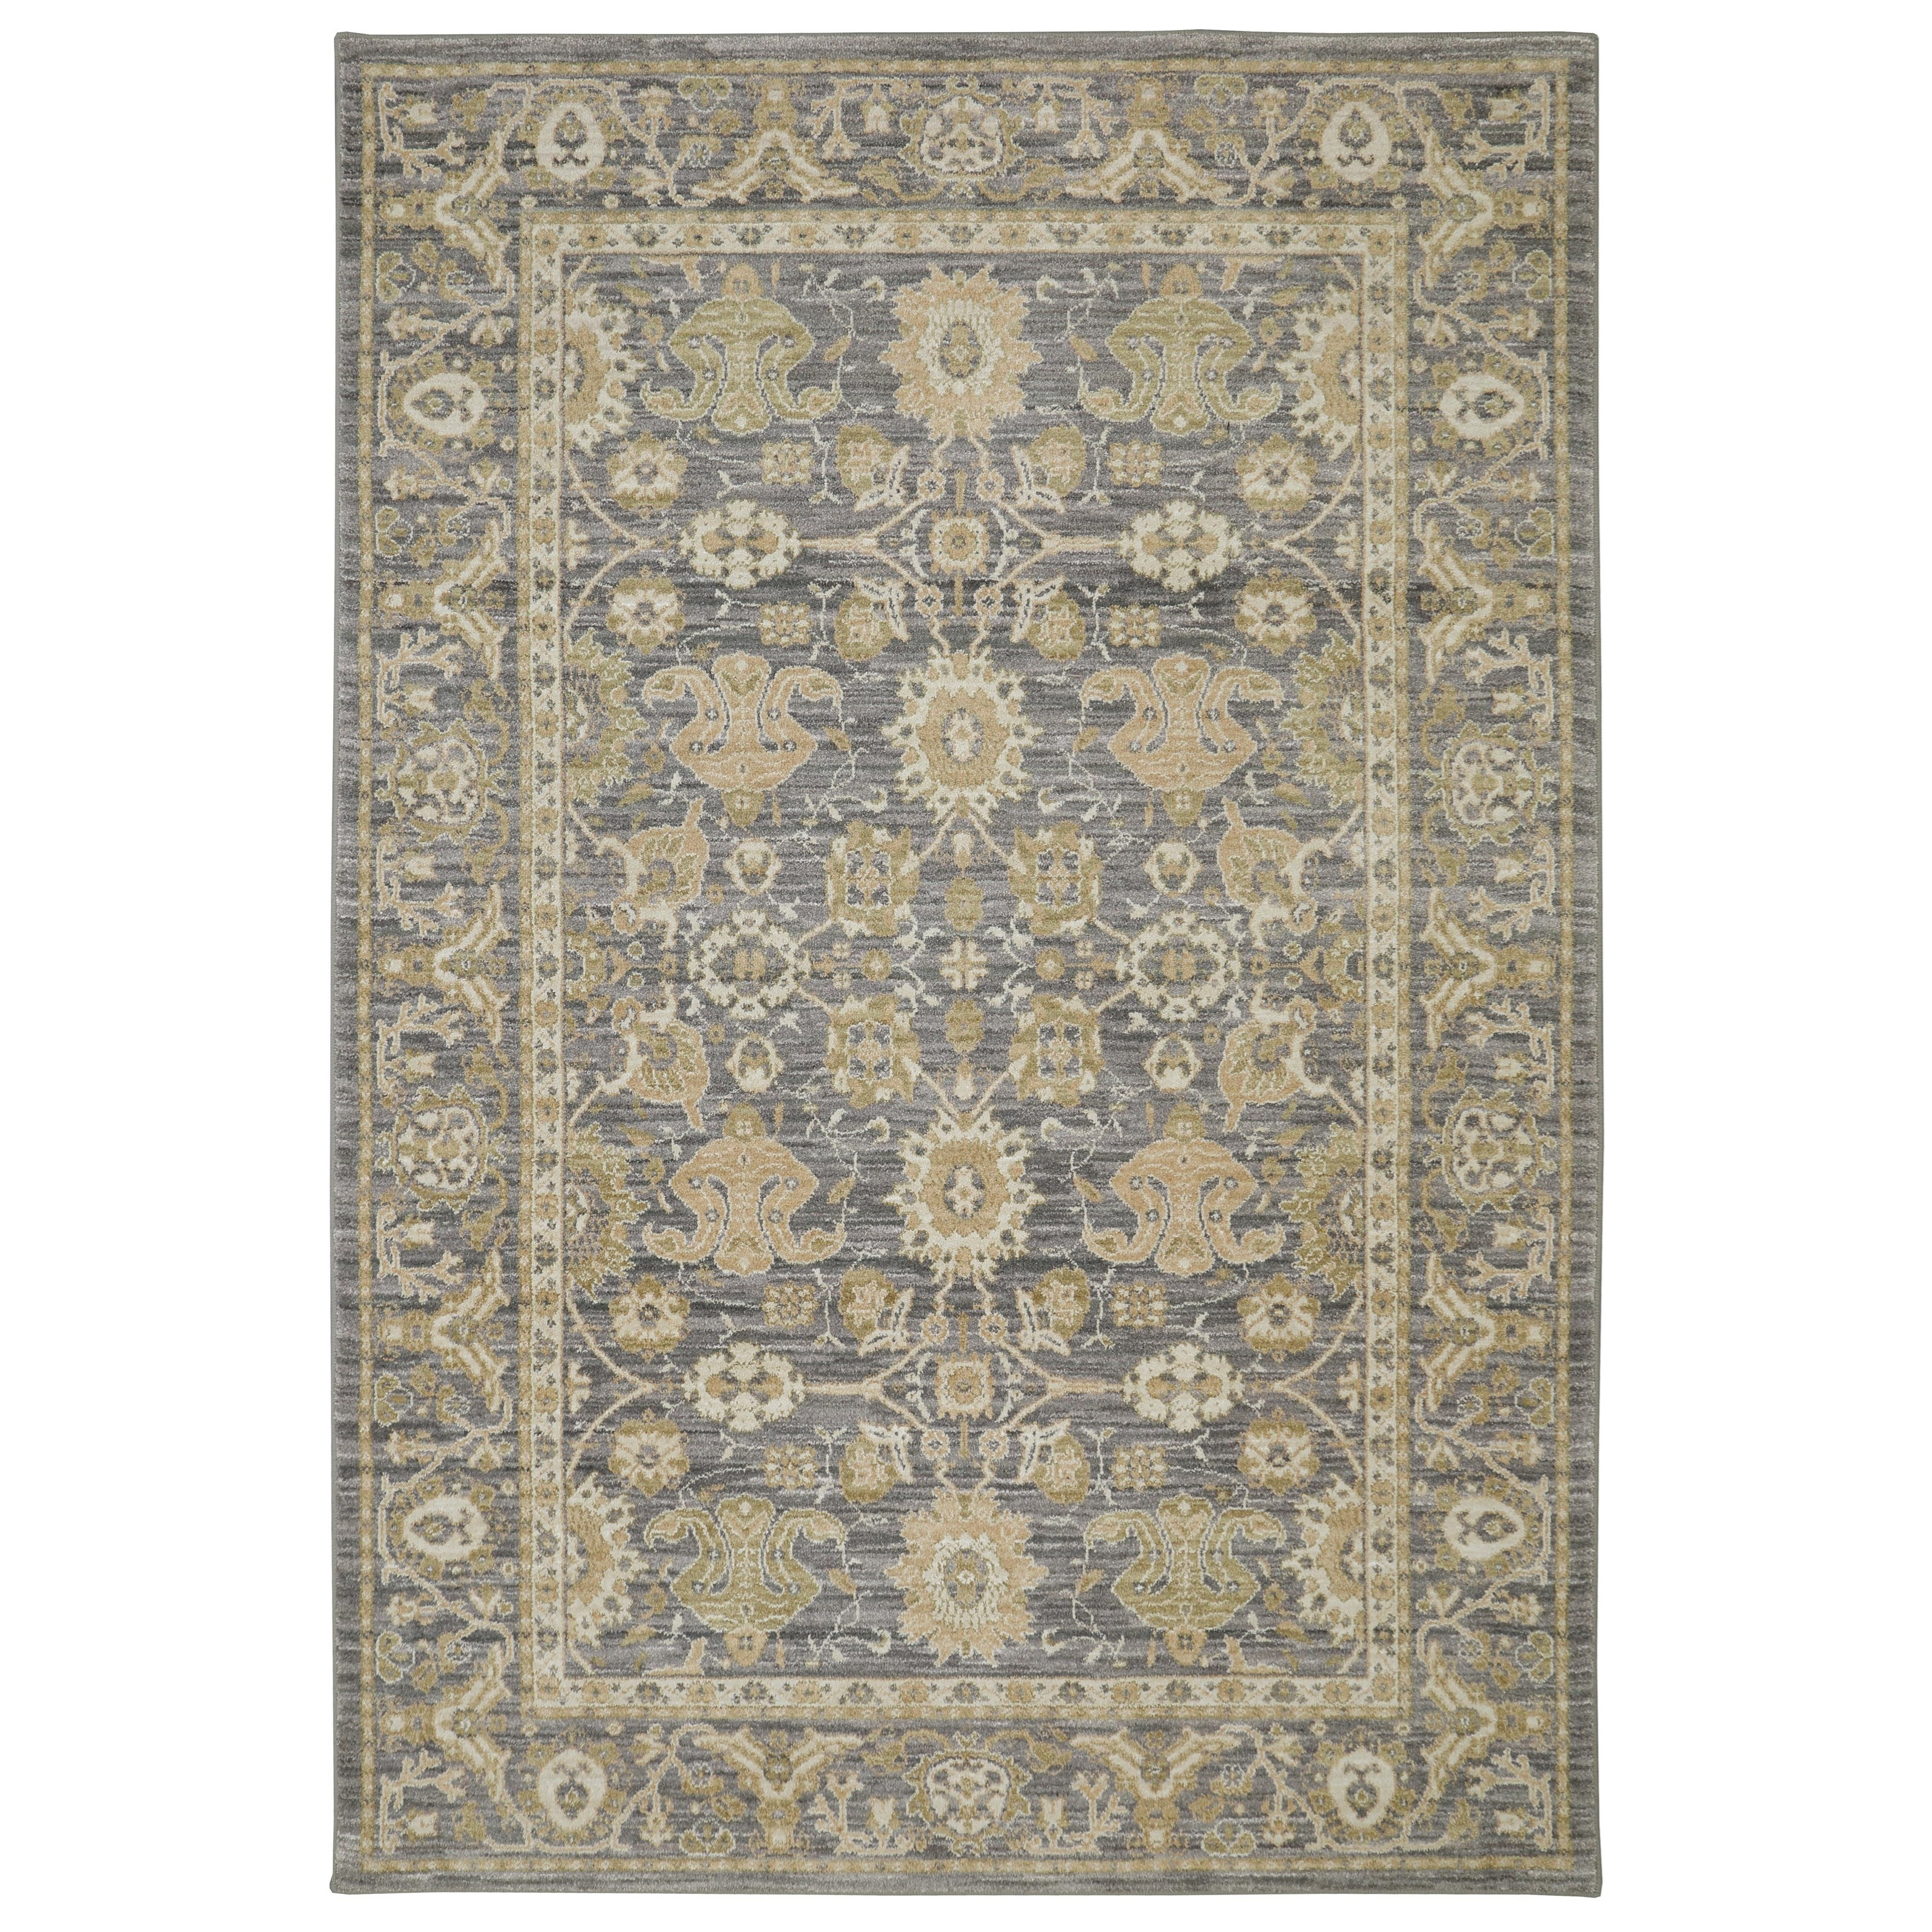 Pacifica 5'3x7'10 Voltaire Gray Rug by Karastan Rugs at Alison Craig Home Furnishings